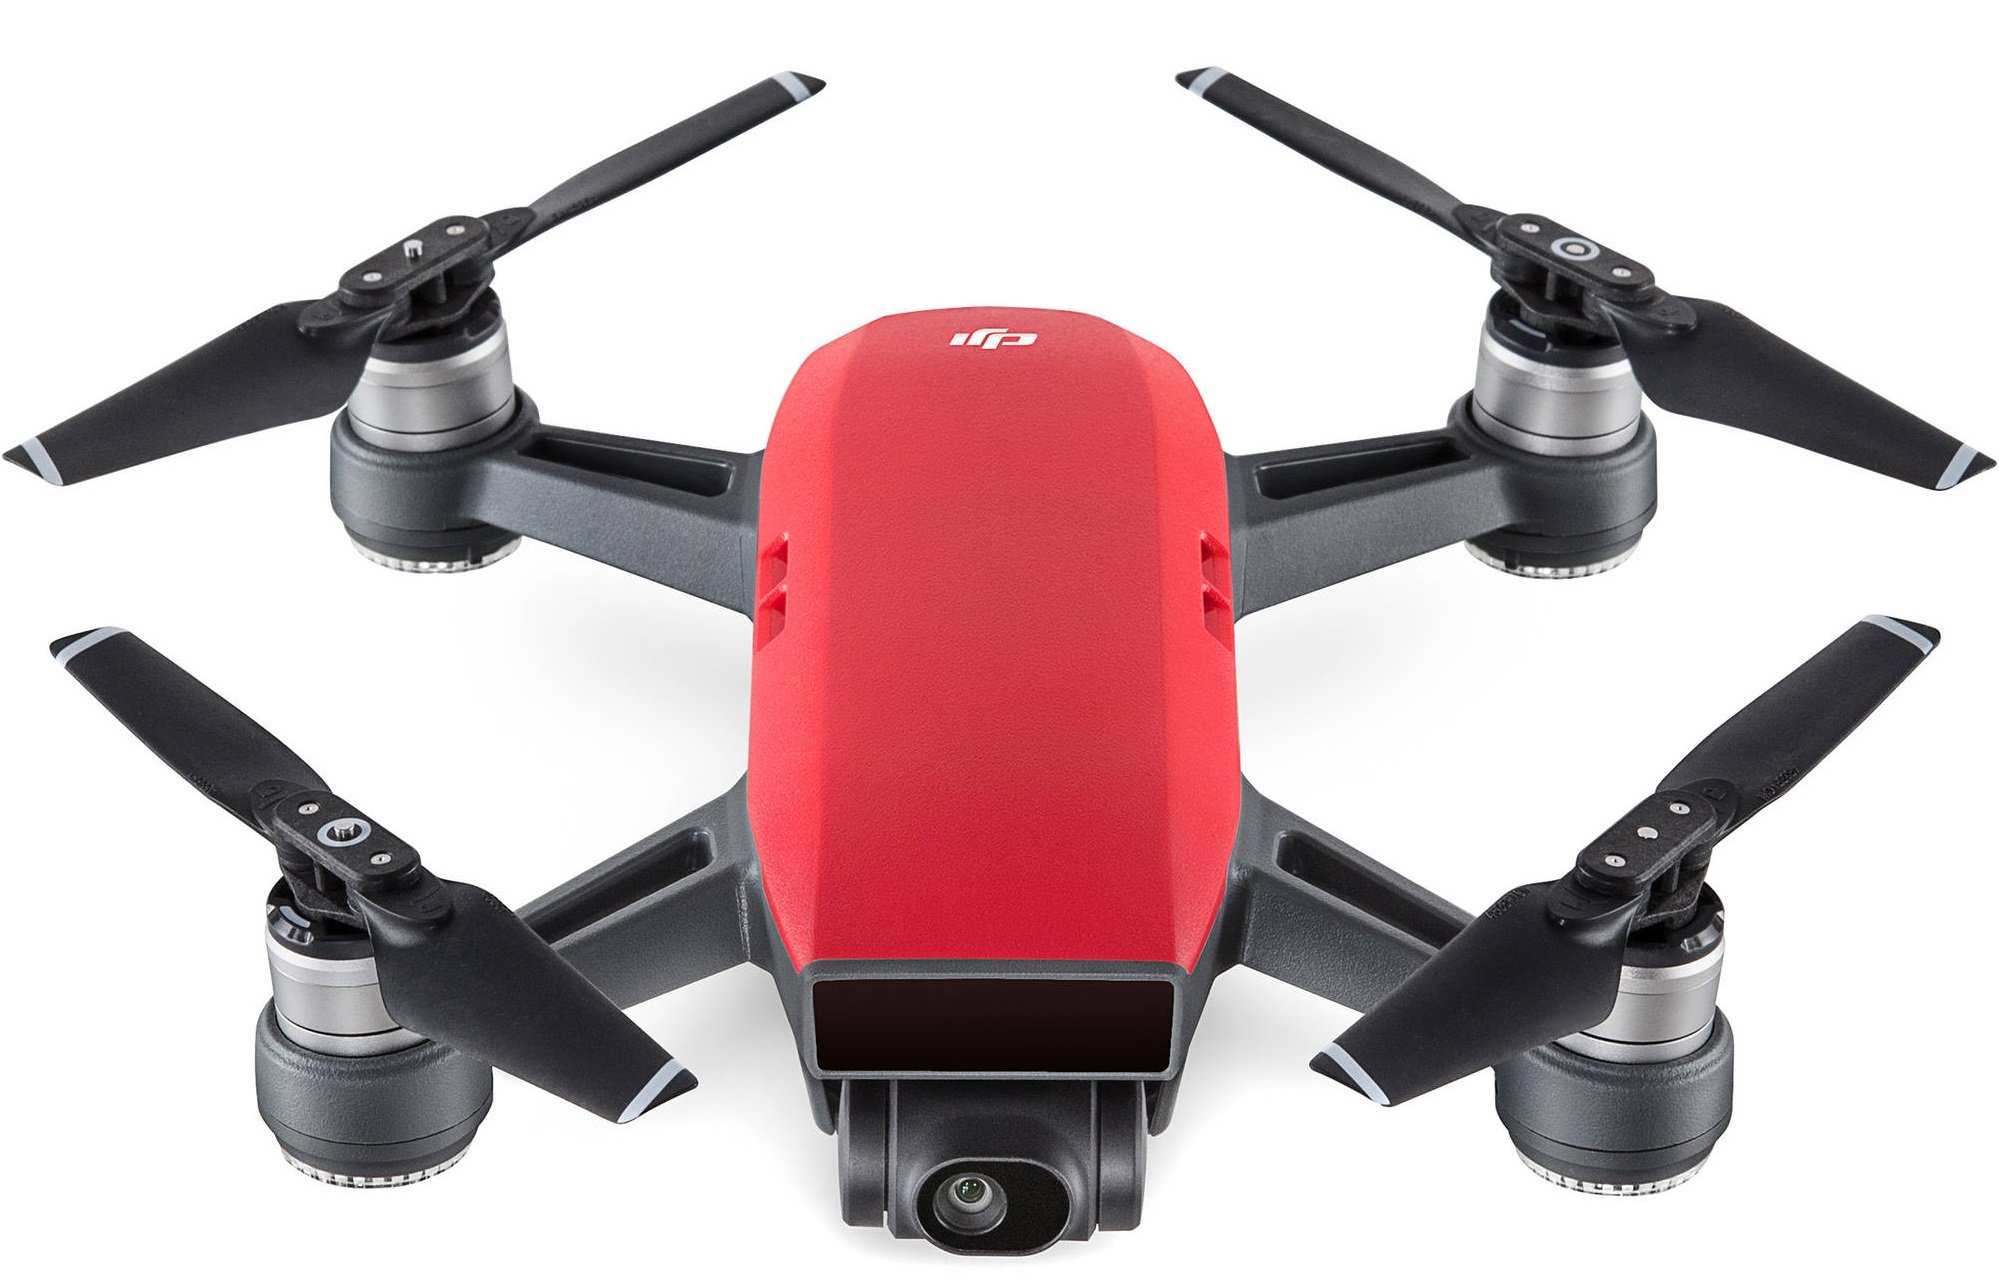 DJI SPARK Fly More Combo - Lava Red version